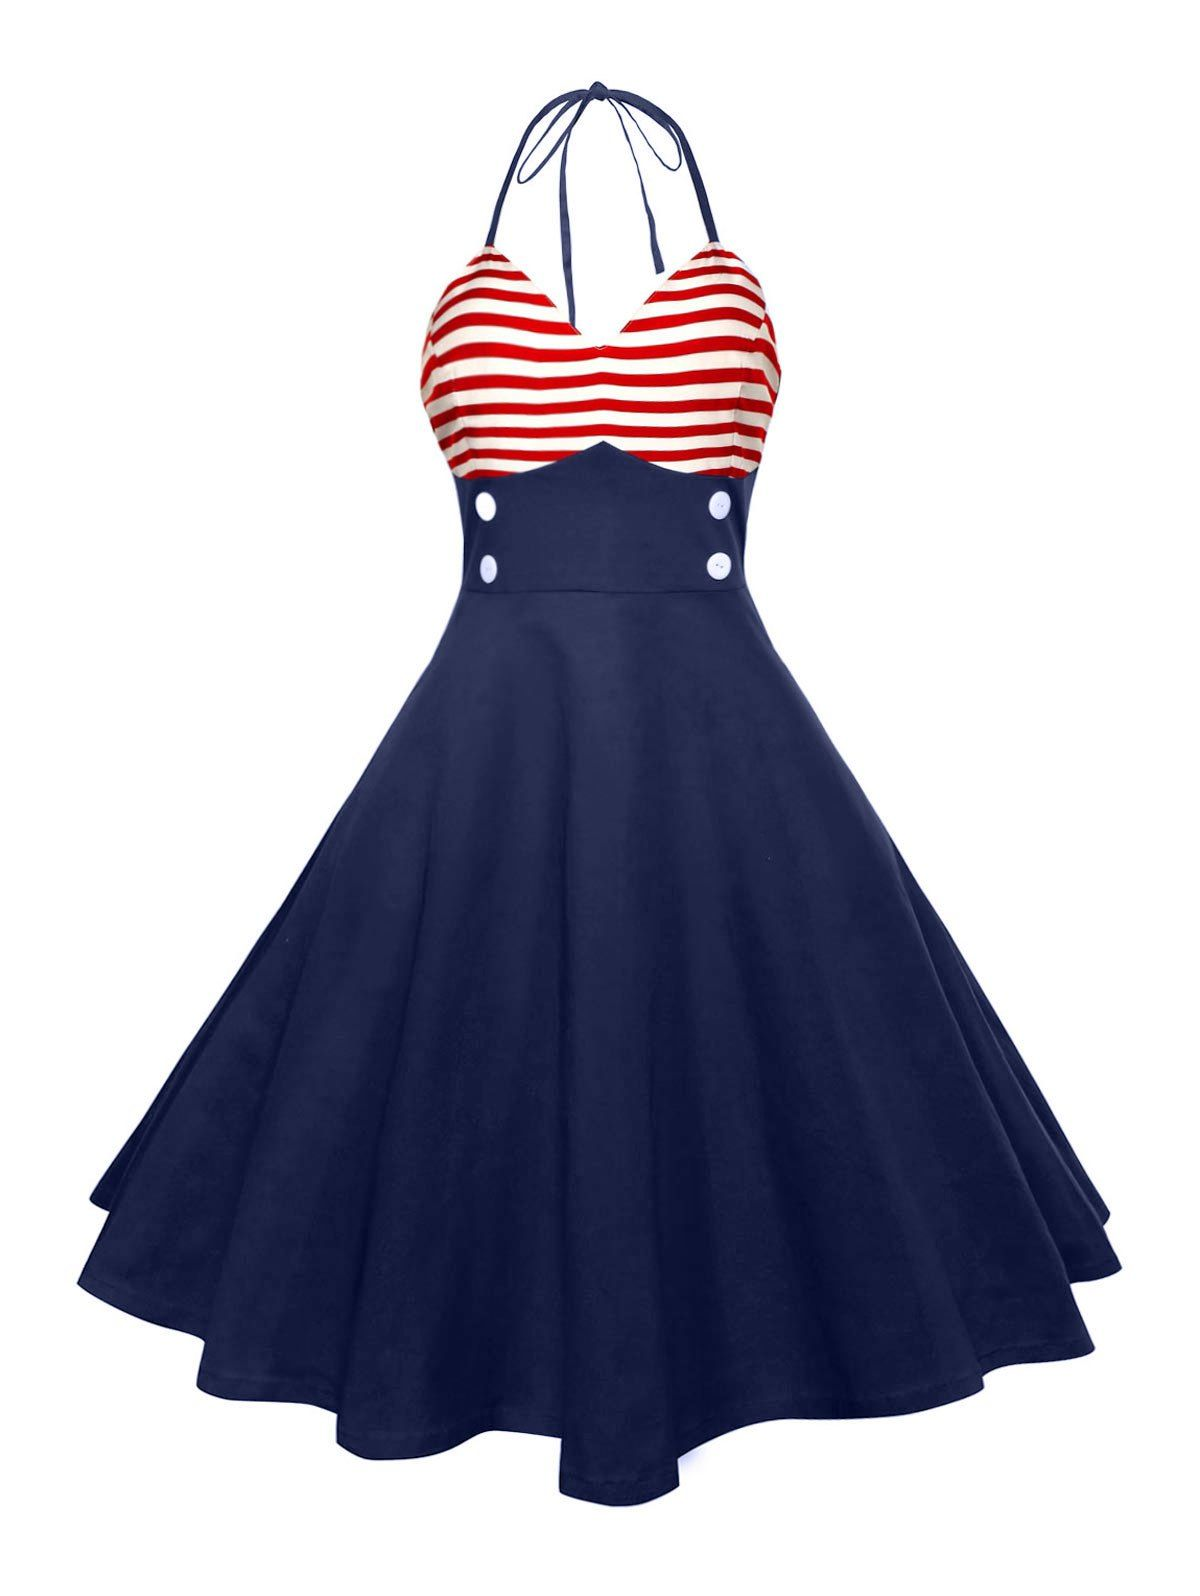 Halter American Flag Buttoned Vintage Dress | Schöne outfits, Outfit ...